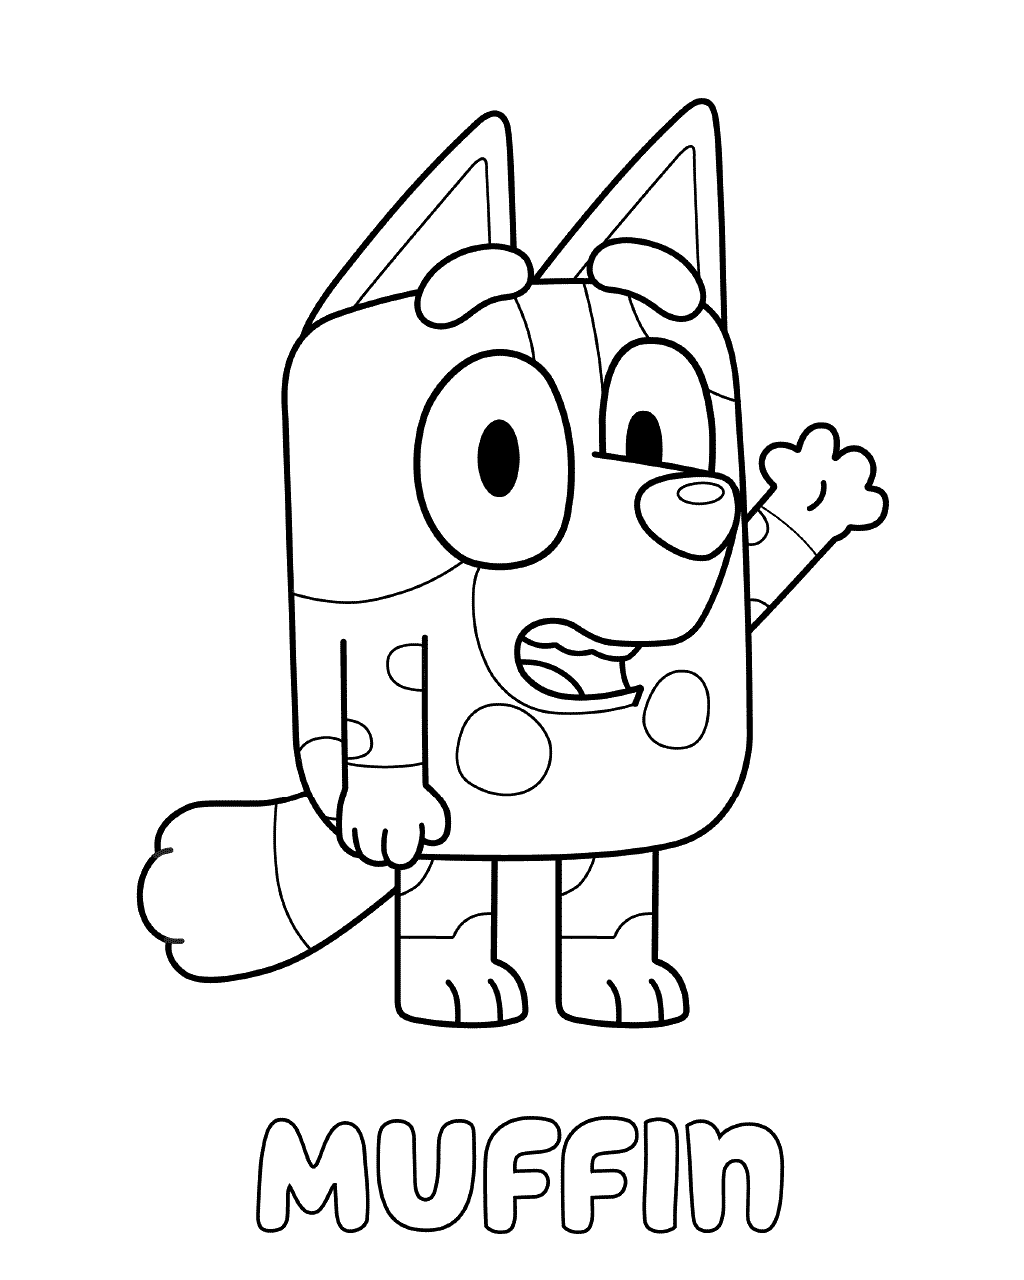 Muffin Bluey Coloring Pages